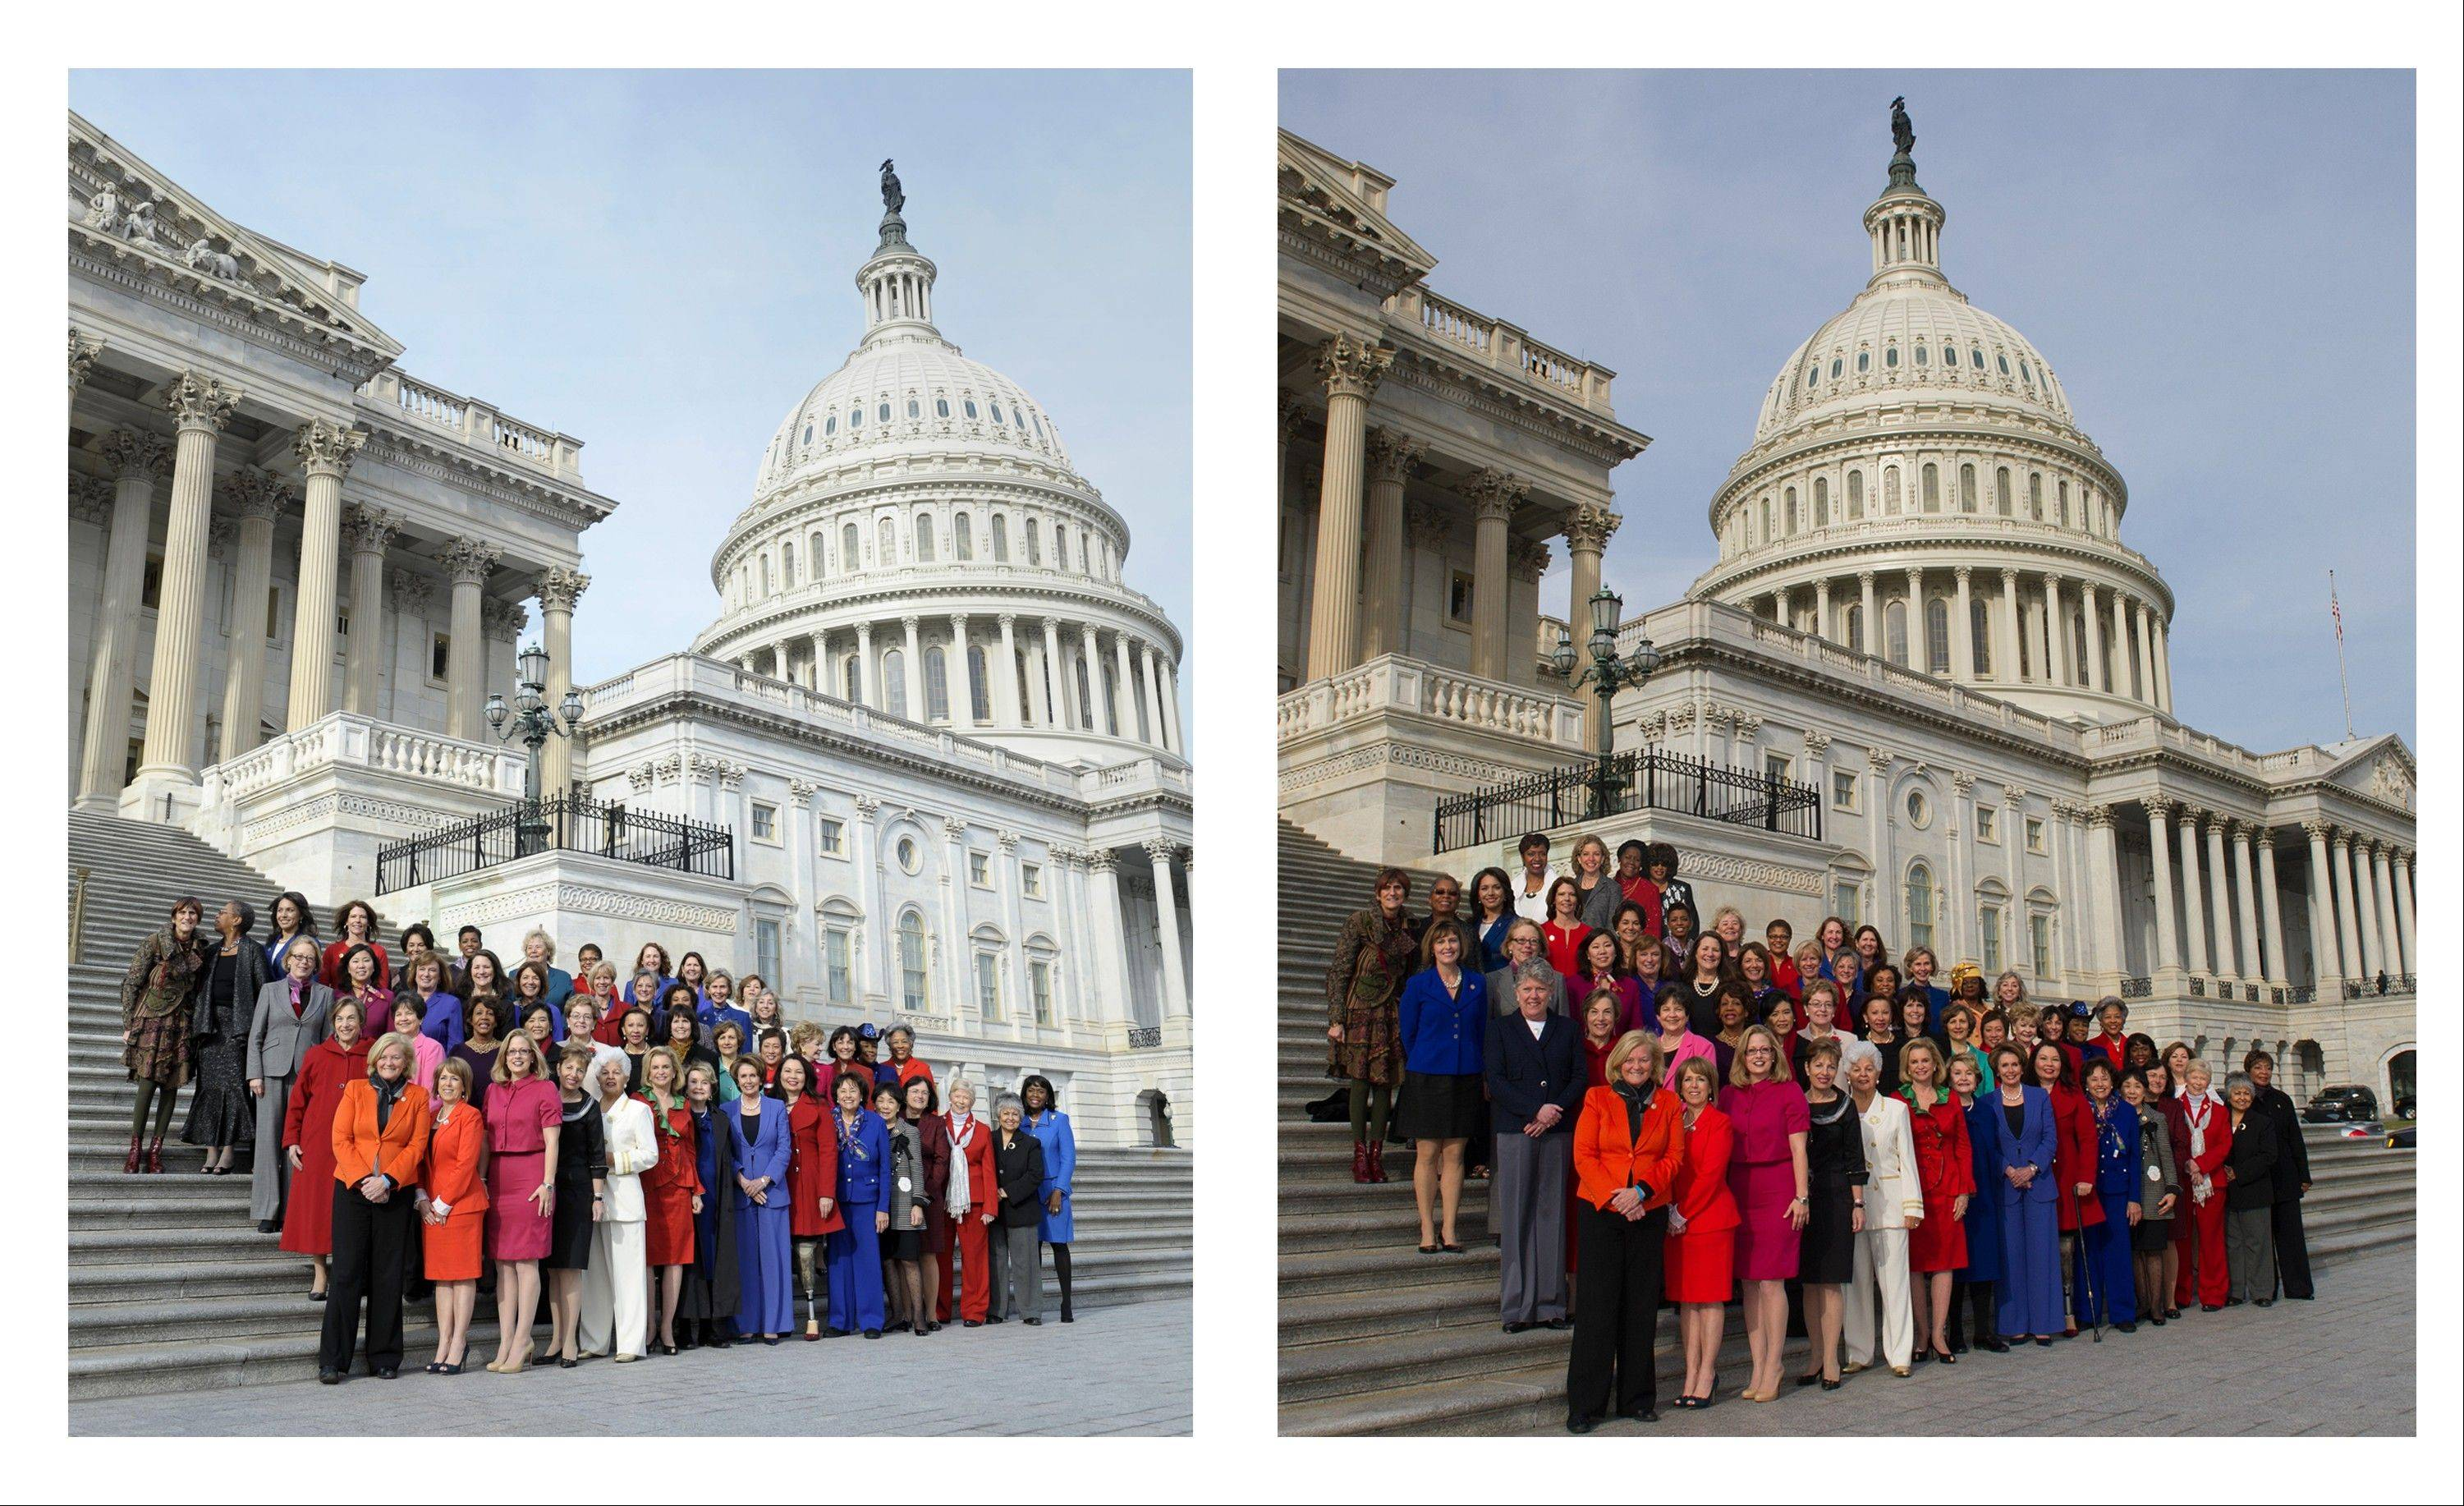 Associated Press This combo of two photos shows, at left, an Associated Press photo taken Jan. 3, 2013 of House Minority Leader Nancy Pelosi posing with female House members on Capitol Hill in Washington, and at right, a screen grab from Pelosi�s Flickr page of an altered photo of Pelosi with female House members on Capitol Hill in Washington. The group photo shows four House members, in the back row, who arrived too late to pose on the Capitol steps.